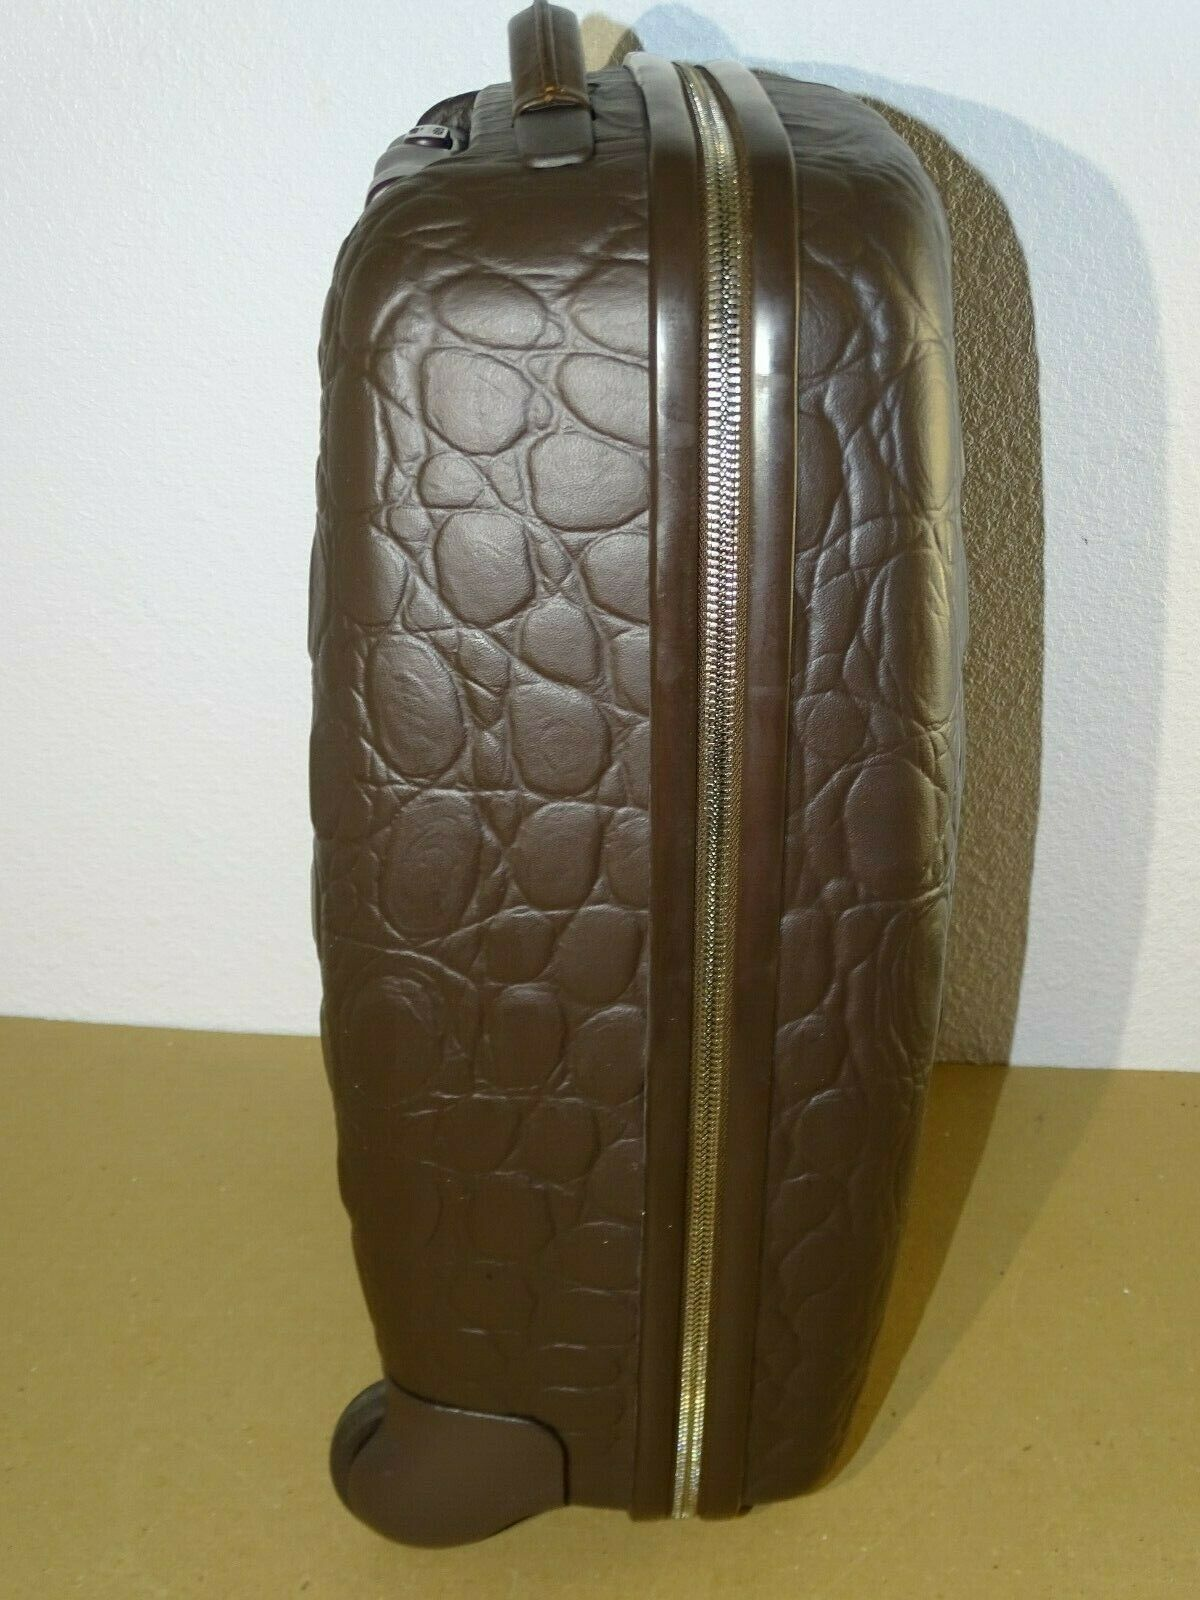 Samsonite Alexander McQueen Black Label Carry-On Suitcase Luggage Crocodile image 4